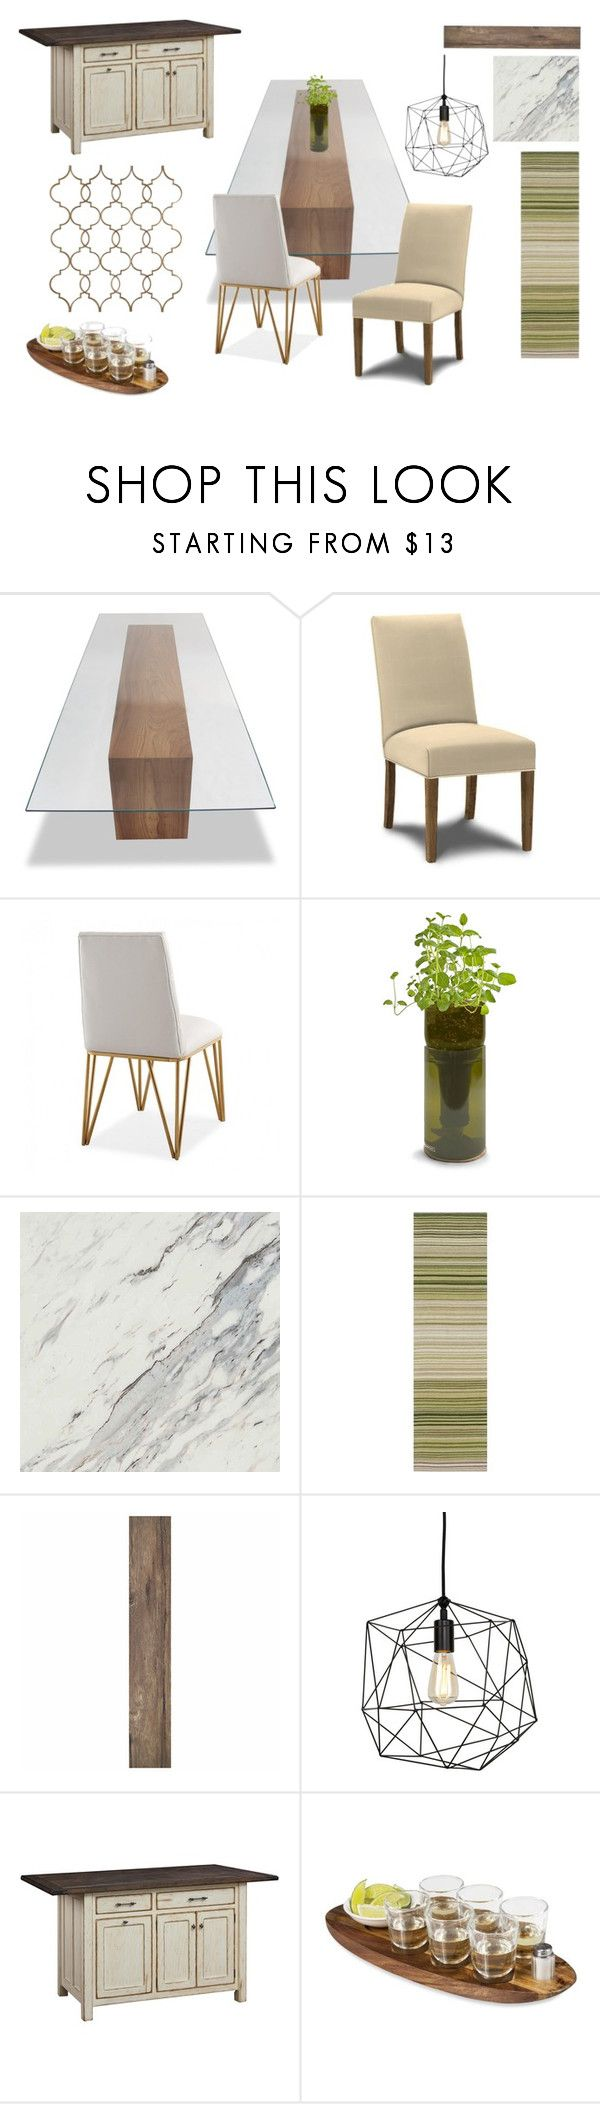 """""""2"""" by geyyuh ❤ liked on Polyvore featuring interior, interiors, interior design, home, home decor, interior decorating, Potting Shed Creations, Safavieh, DutchCrafters and Picnic Time"""